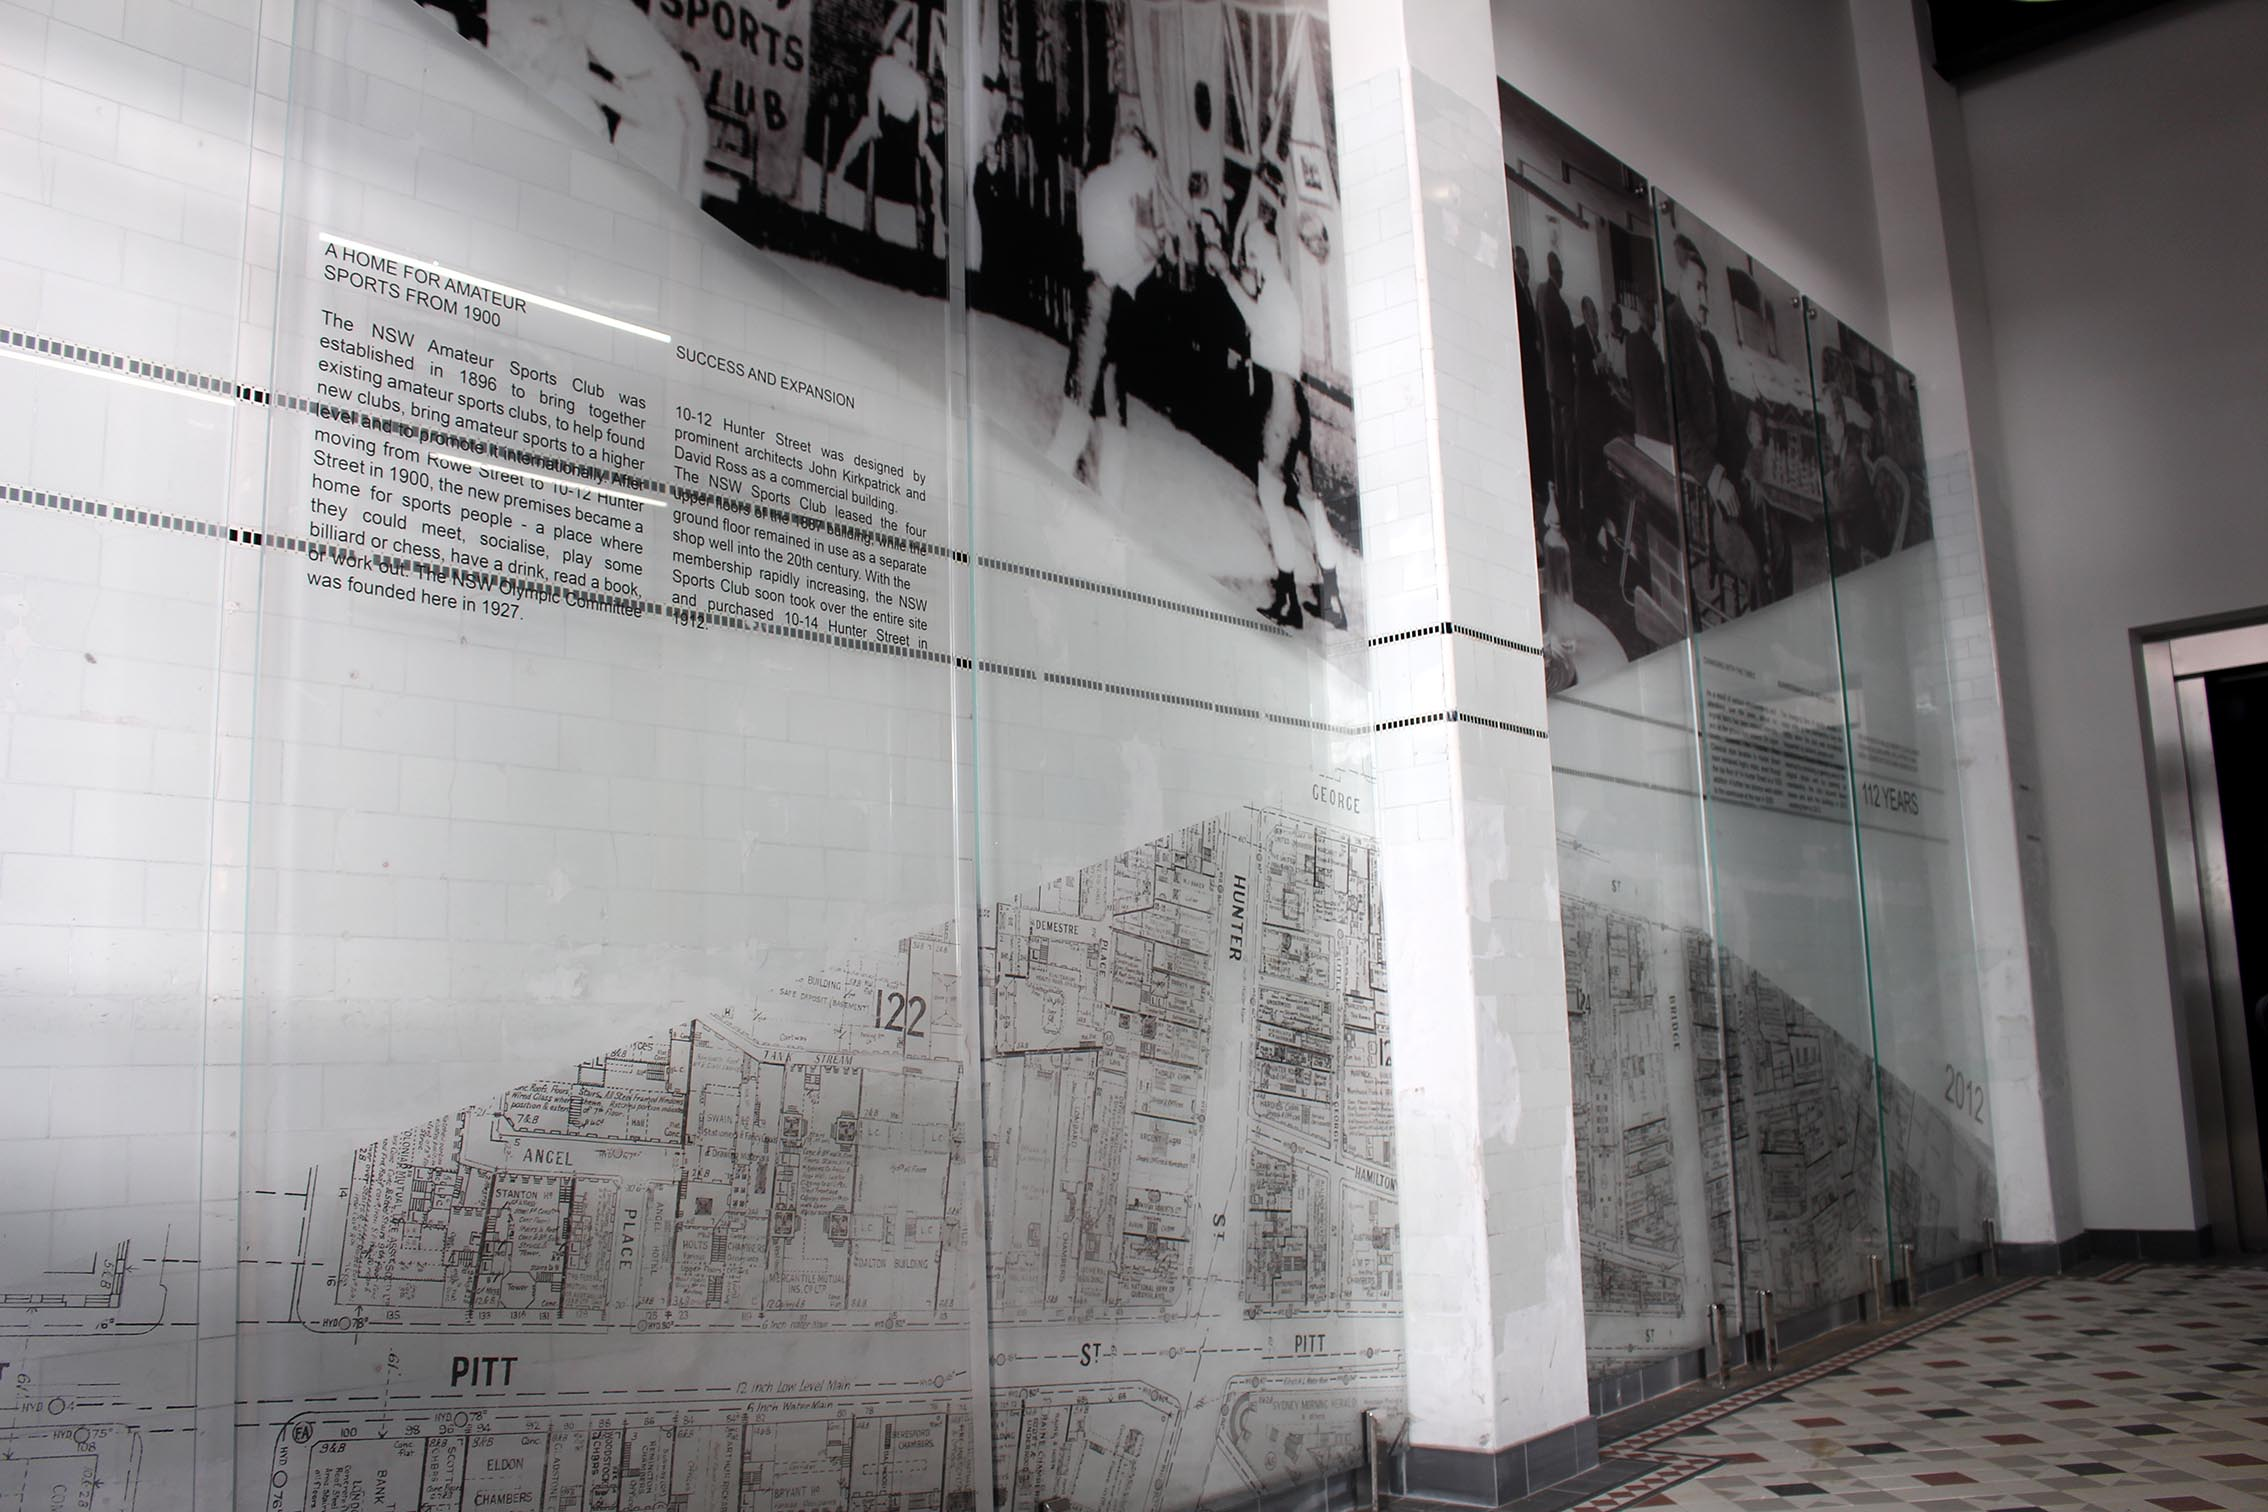 Six large pin mounted glass panels with various black and white images of the NSW Sports club in its heyday.